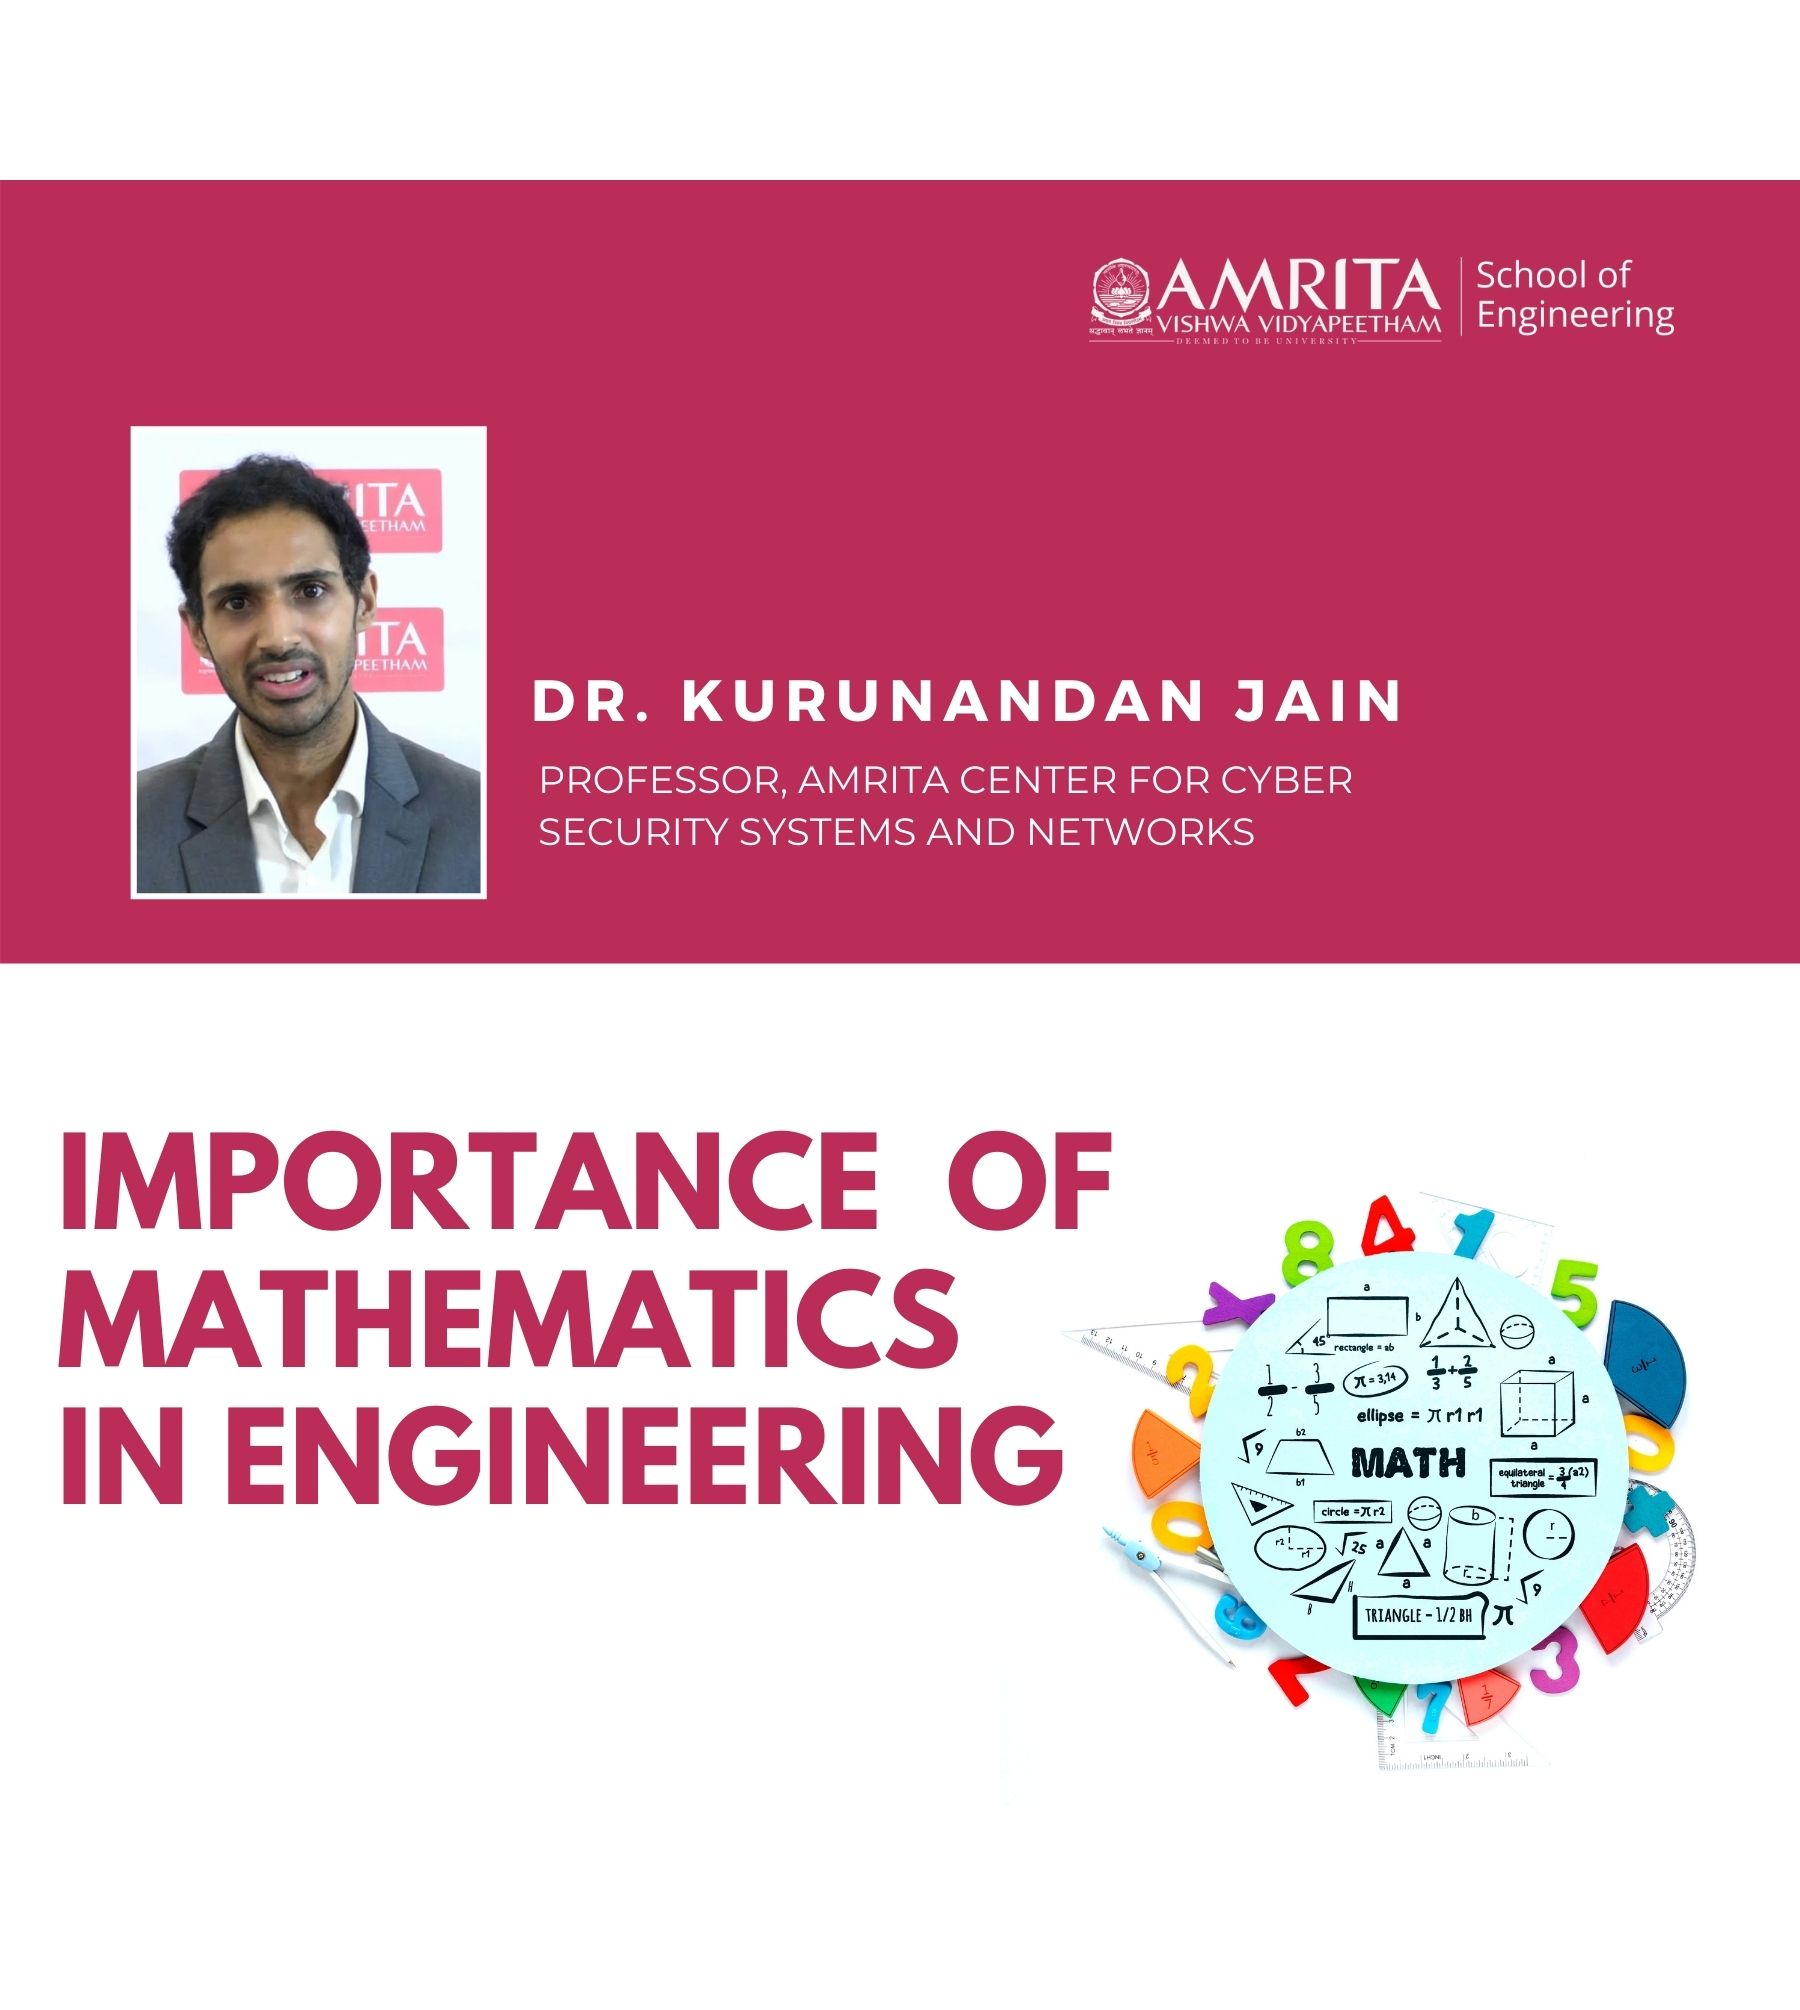 Importance of Mathematics in Engineering - Dr. Kurunandan Jain